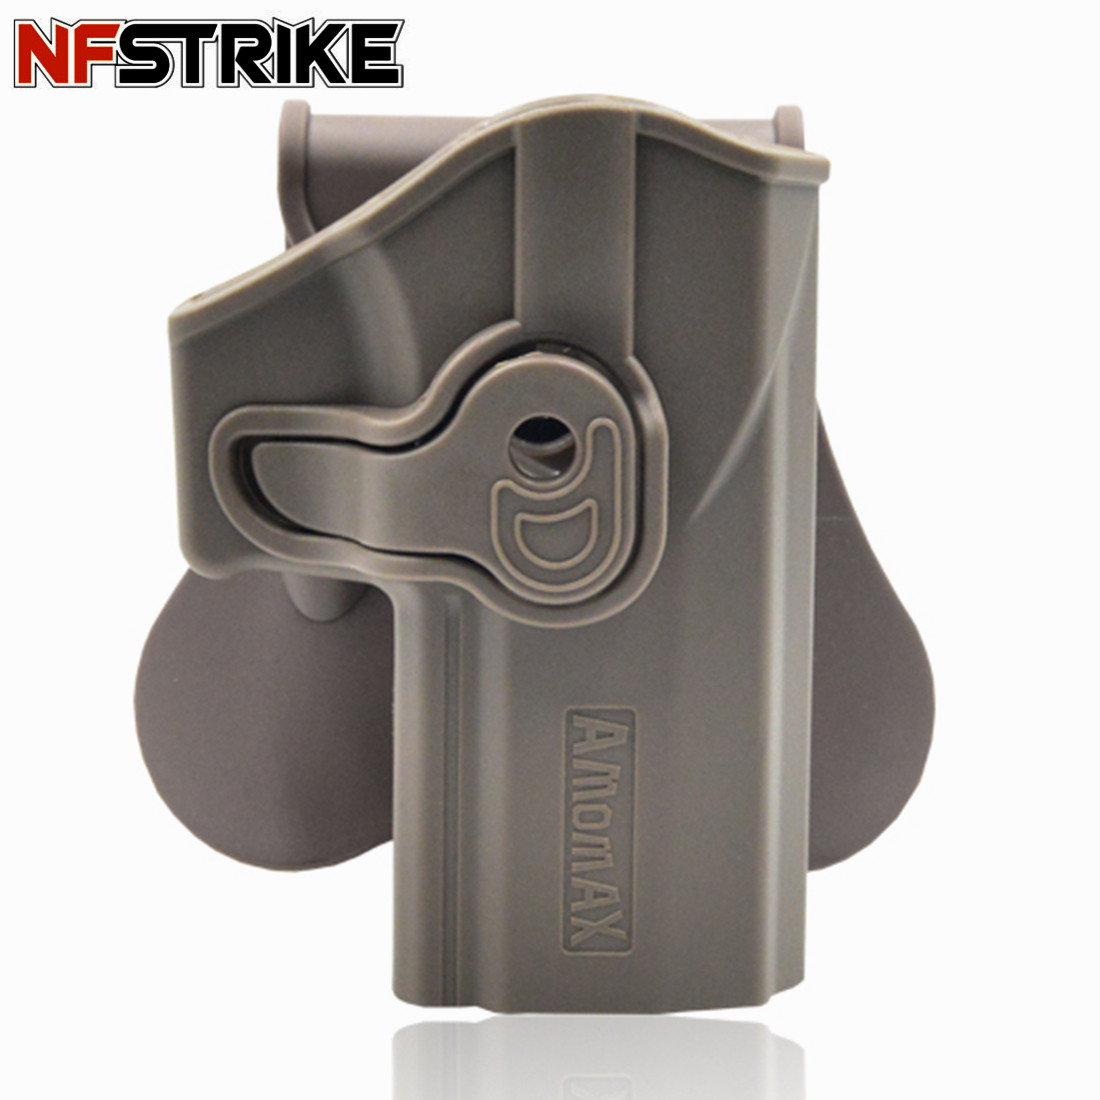 NFSTRIKE Amomax Adjustable Tactical Holster For Sig Sauer P320 Outdoors Tactics Accessories - Right-Handed Tan